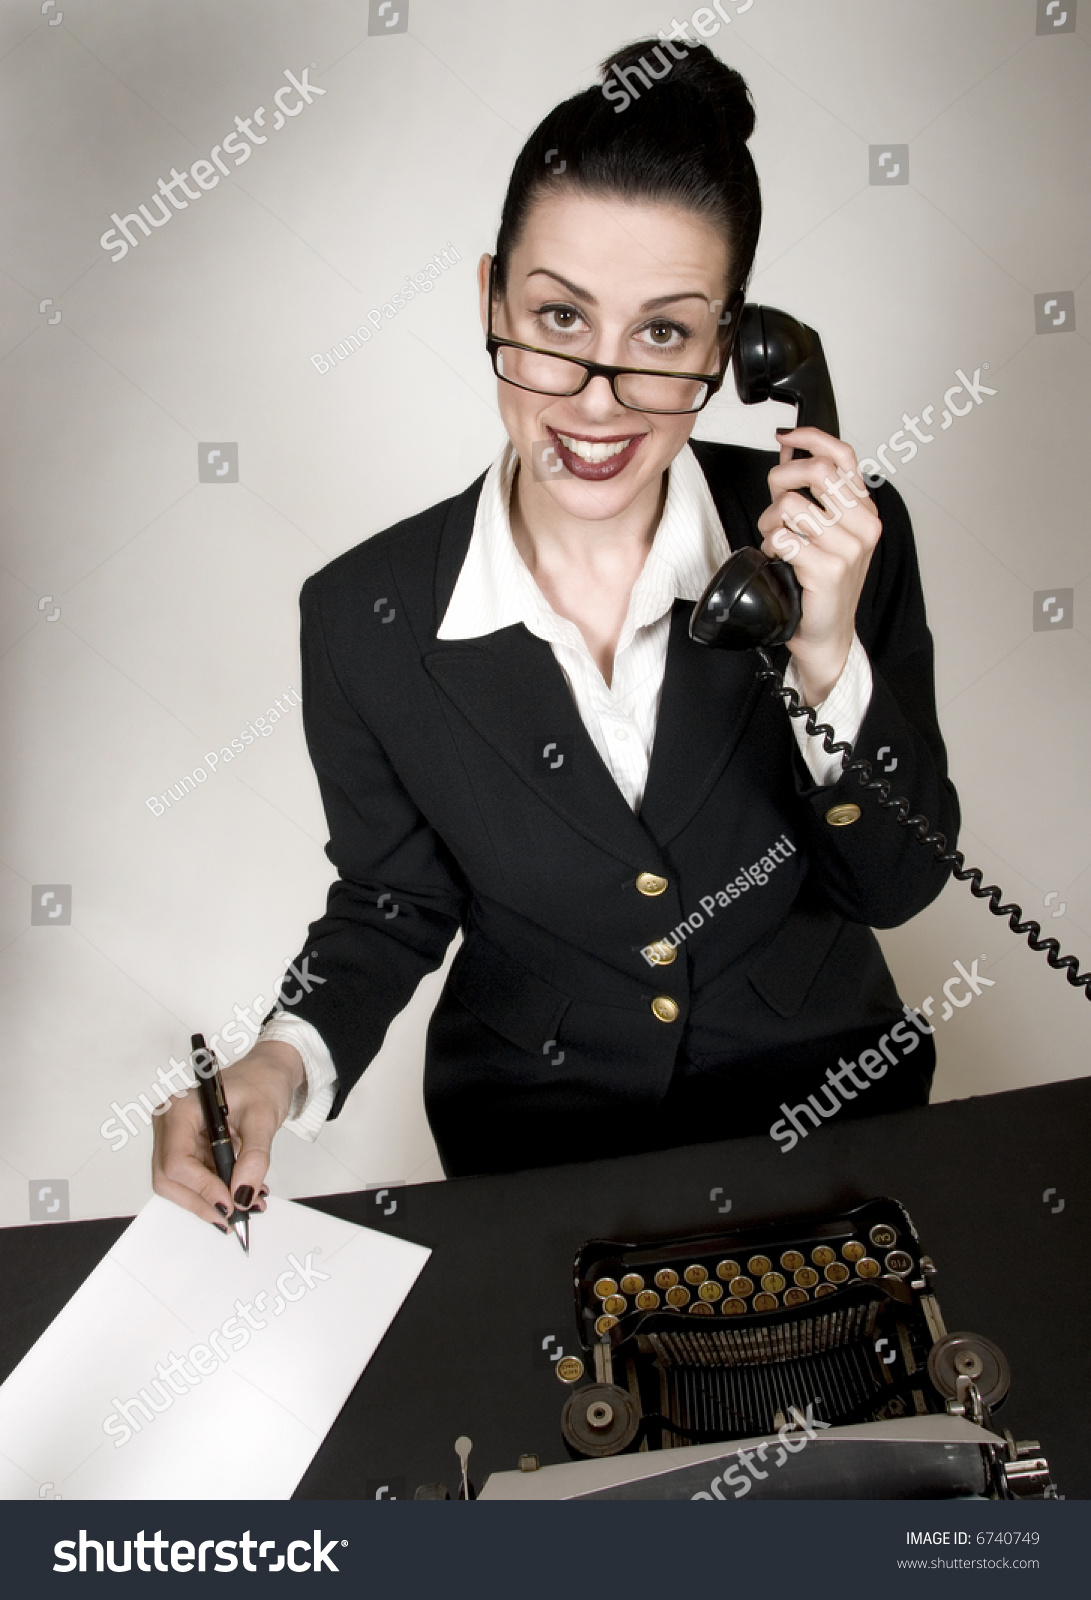 Frustrated office worker on the phone holding stock photo image - Retro Office Worker With Vintage Typewriter And Phone Answering A Call